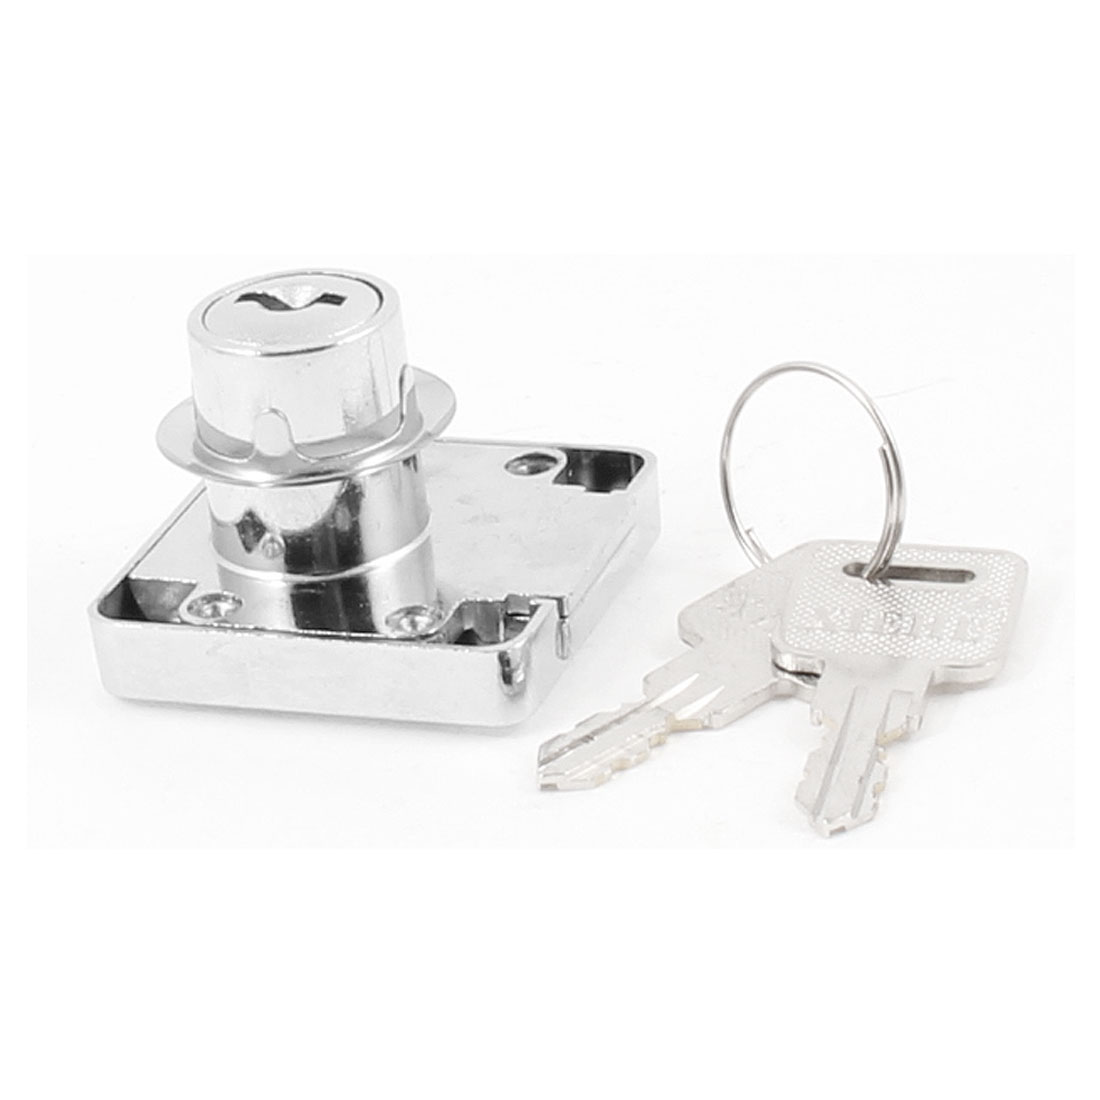 Home Office Silver Tone Metal 40mm x 39mm Cabinet Drawer Lock w 2 Keys